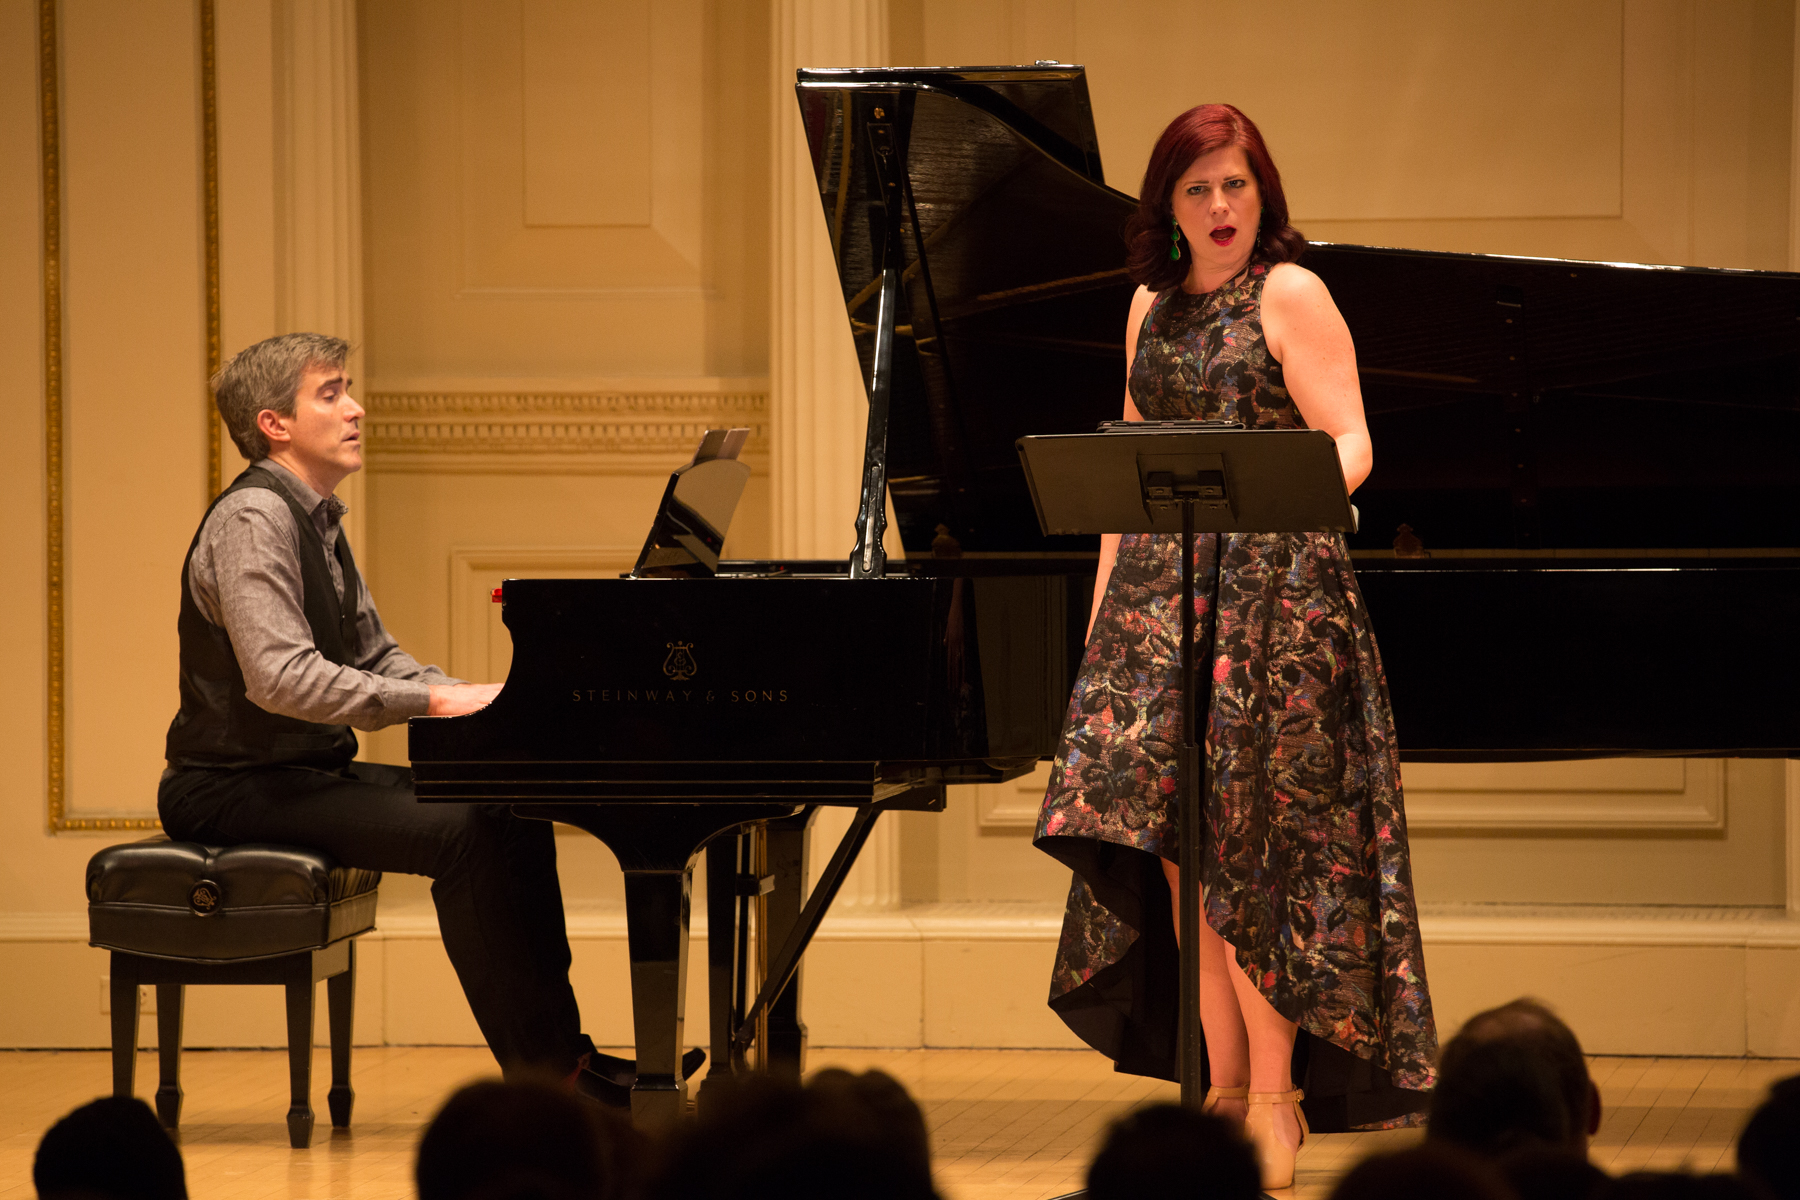 ame-2018-carnegie-hall-vocal-music-of-robert-paterson_G9A7675.jpg